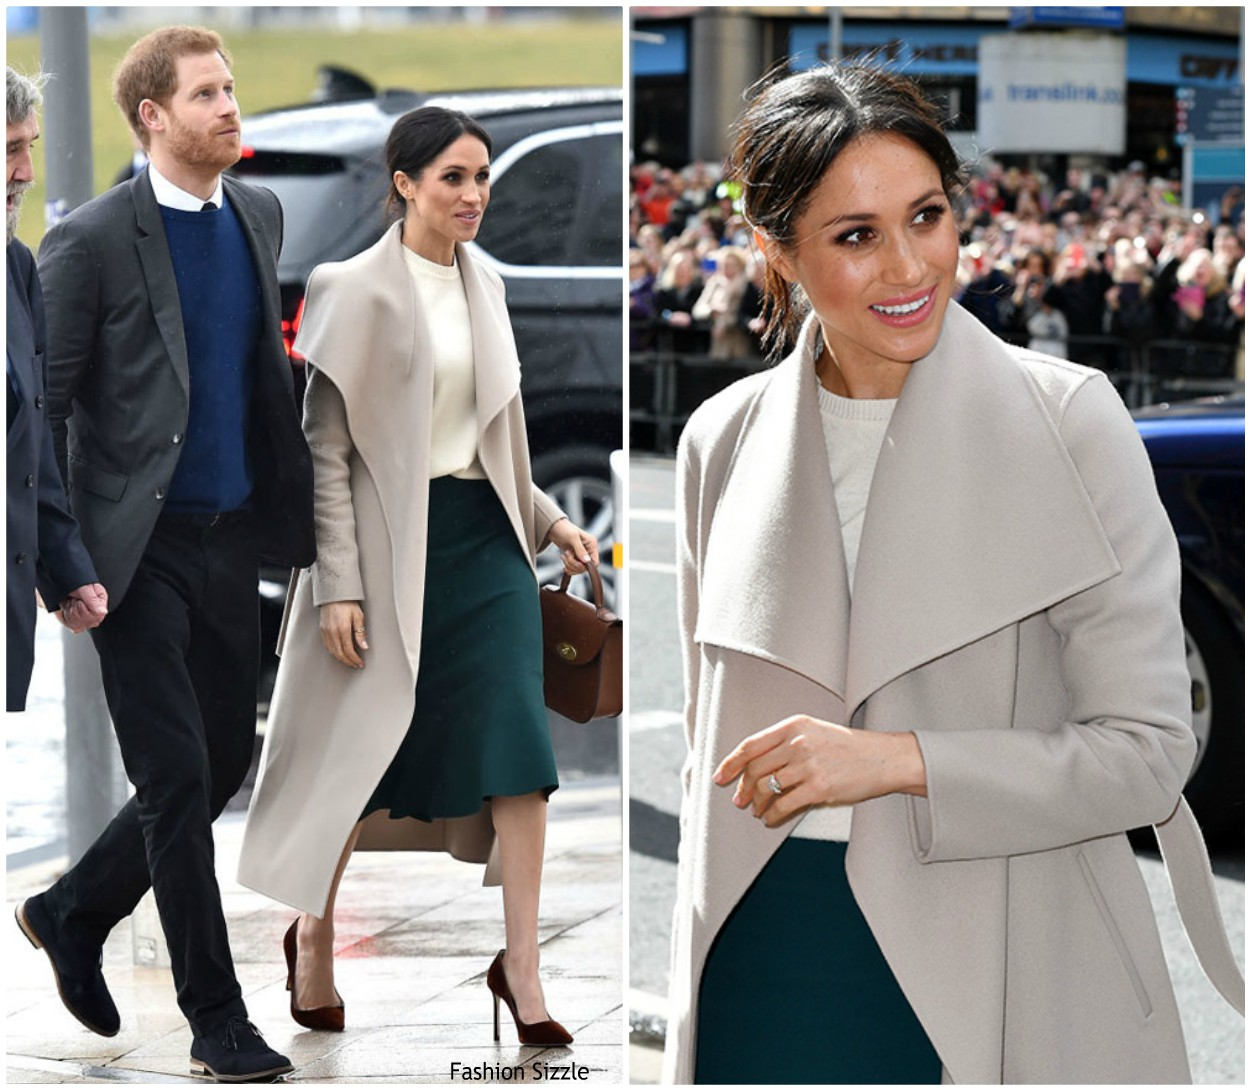 Meghan Markle Just Took the Victoria Beckham Route for Her Wedding Guest Outfit recommendations